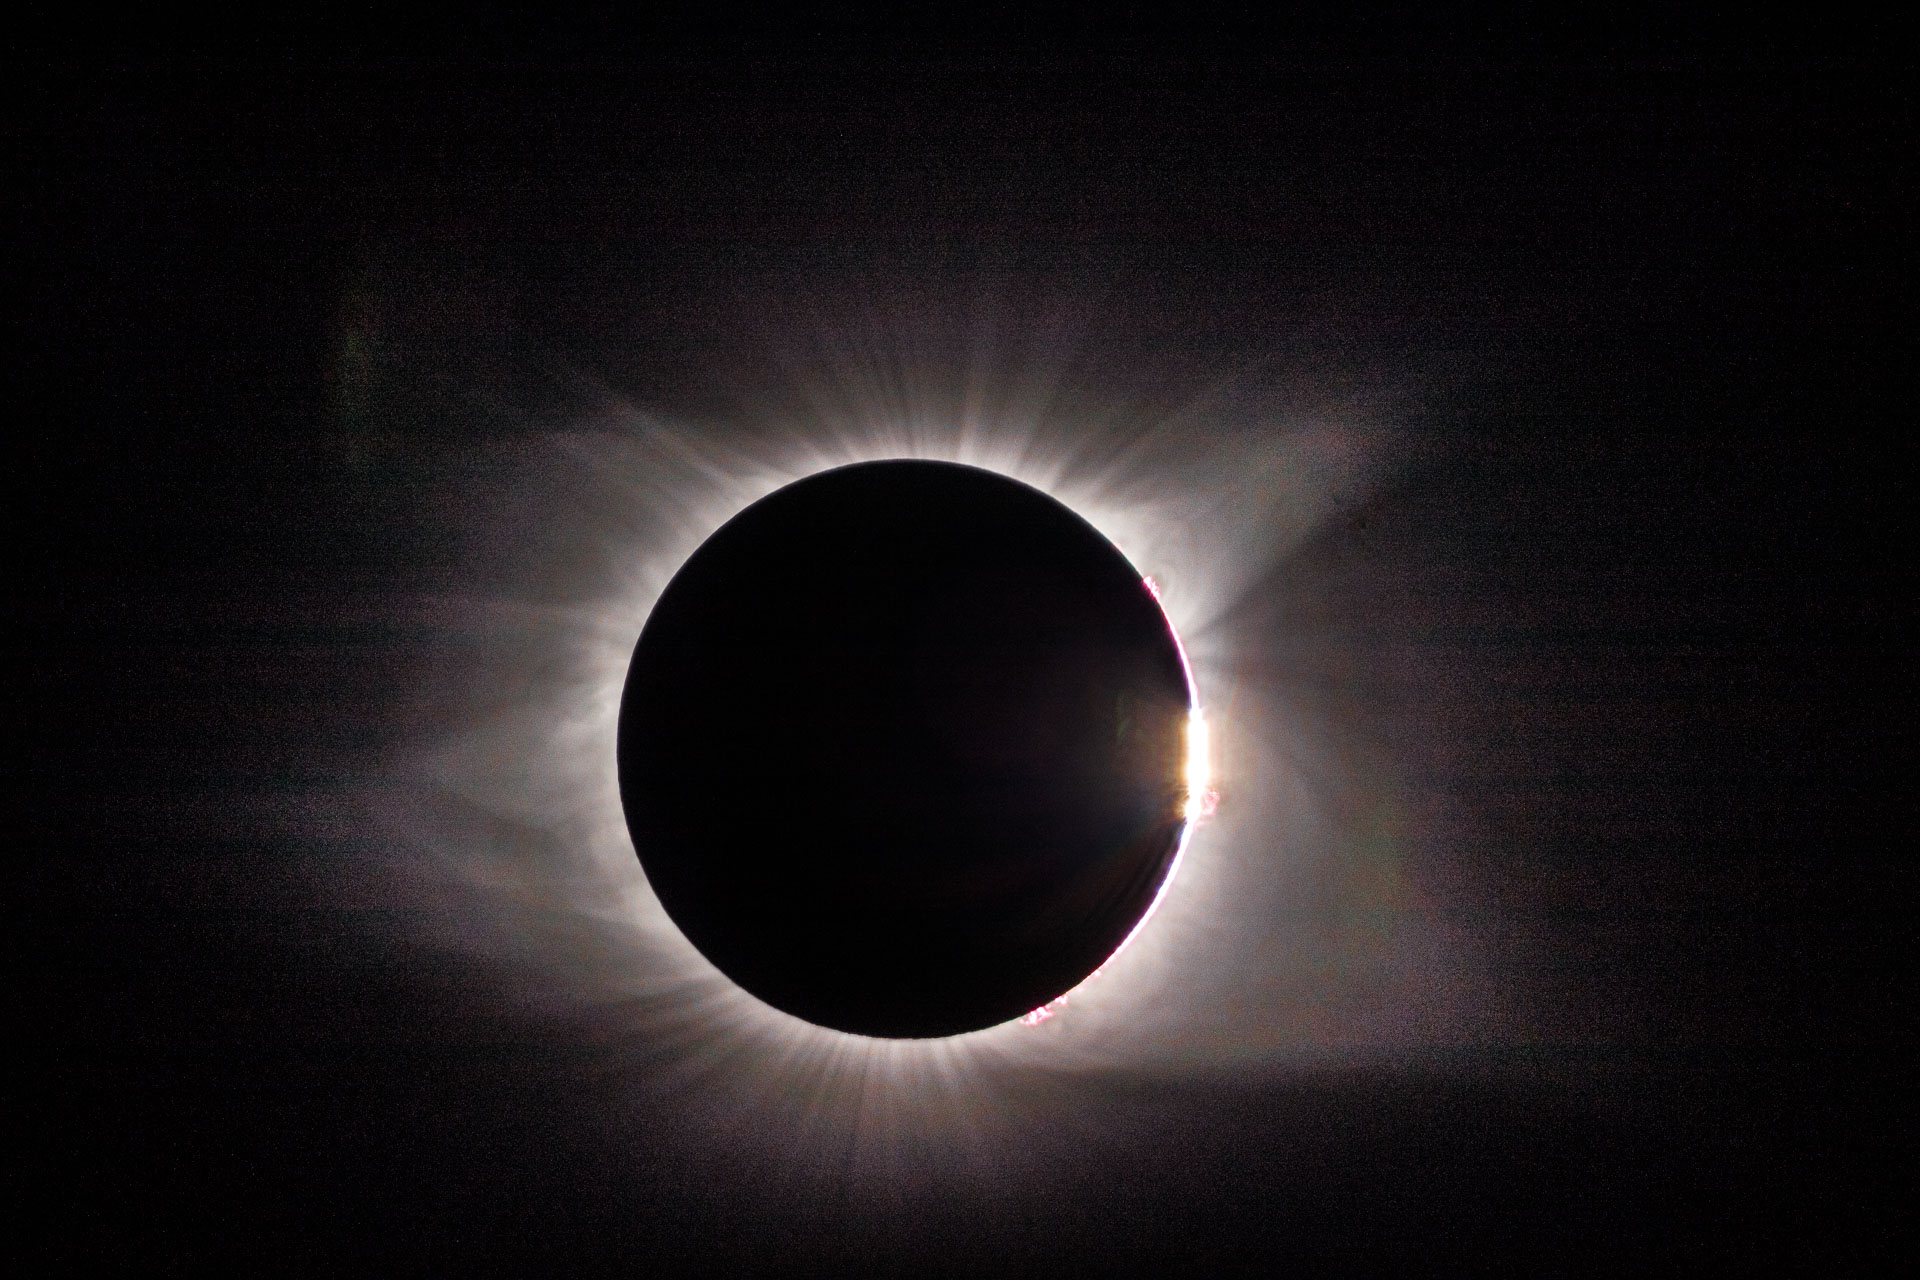 The Diamond Ring with solar flares from eclipse 2017 by Kevin Ames